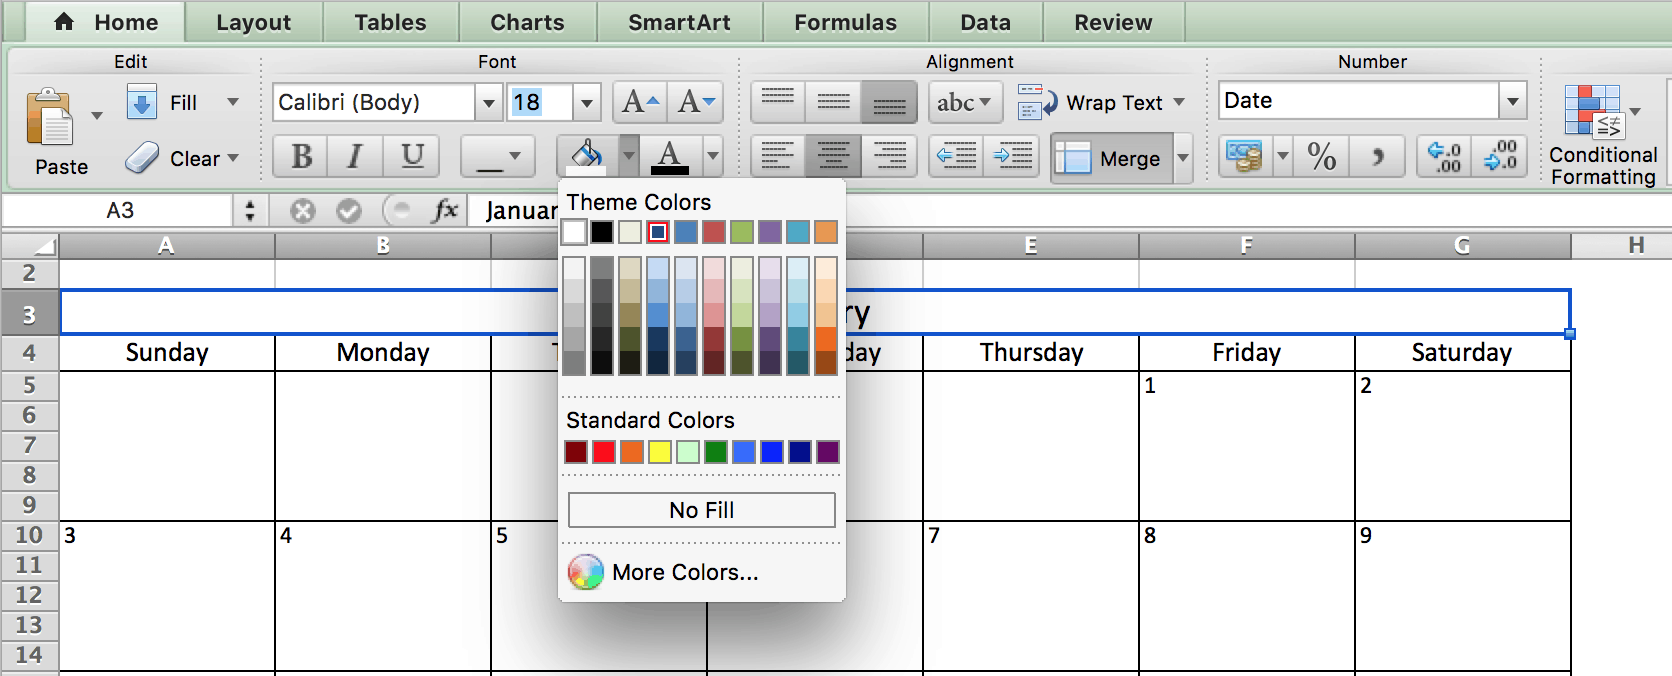 Ediblewildsus  Inspiring Make A  Calendar In Excel Includes Free Template With Hot Choosing Colors  Calendar In Excel With Nice Add Ins For Excel  Also Excel Macro Variable In Addition Insert Symbols In Excel And Excel Random Order As Well As Relative Formula Excel Additionally Excel  Vlookup Example From Smartsheetcom With Ediblewildsus  Hot Make A  Calendar In Excel Includes Free Template With Nice Choosing Colors  Calendar In Excel And Inspiring Add Ins For Excel  Also Excel Macro Variable In Addition Insert Symbols In Excel From Smartsheetcom